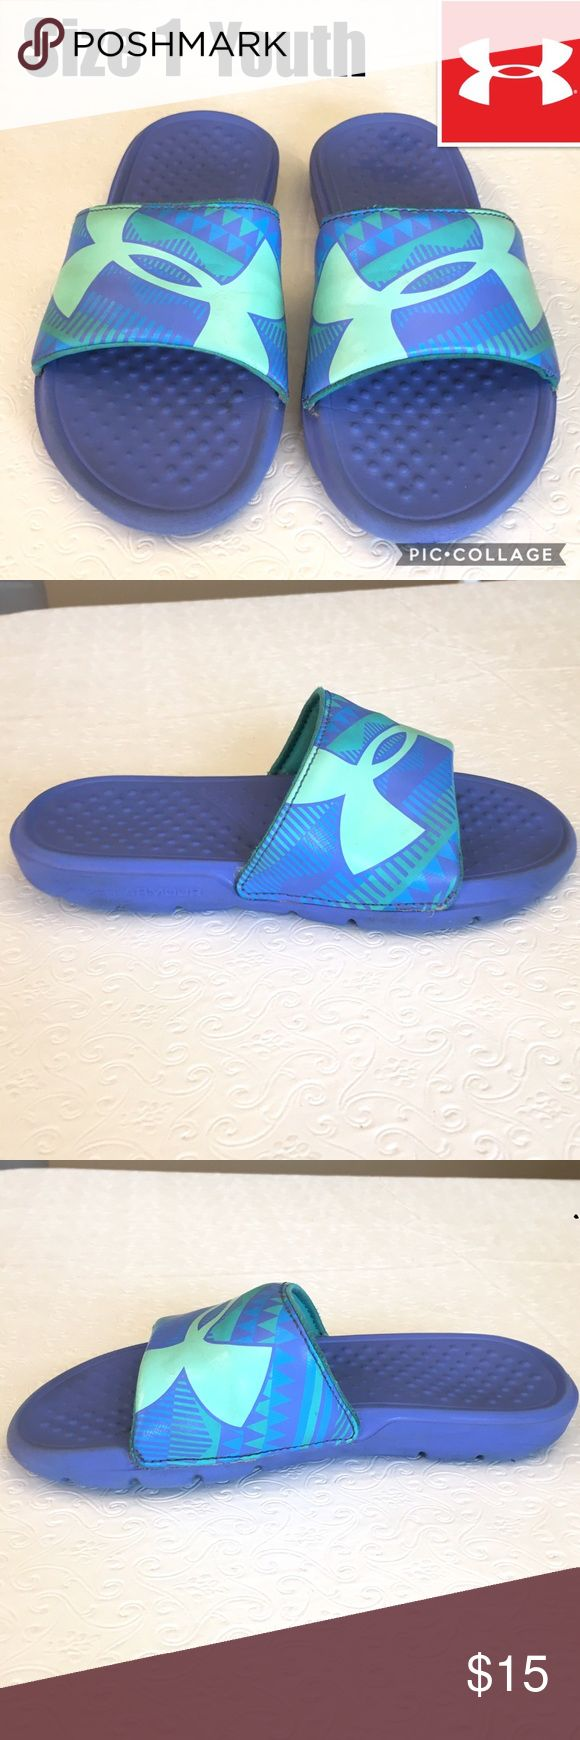 Under Armour Slides Youth Size 1 Excellent Condition. Barely Worn, Grew Too Fast! Under Armour Shoes Sandals & Flip Flops